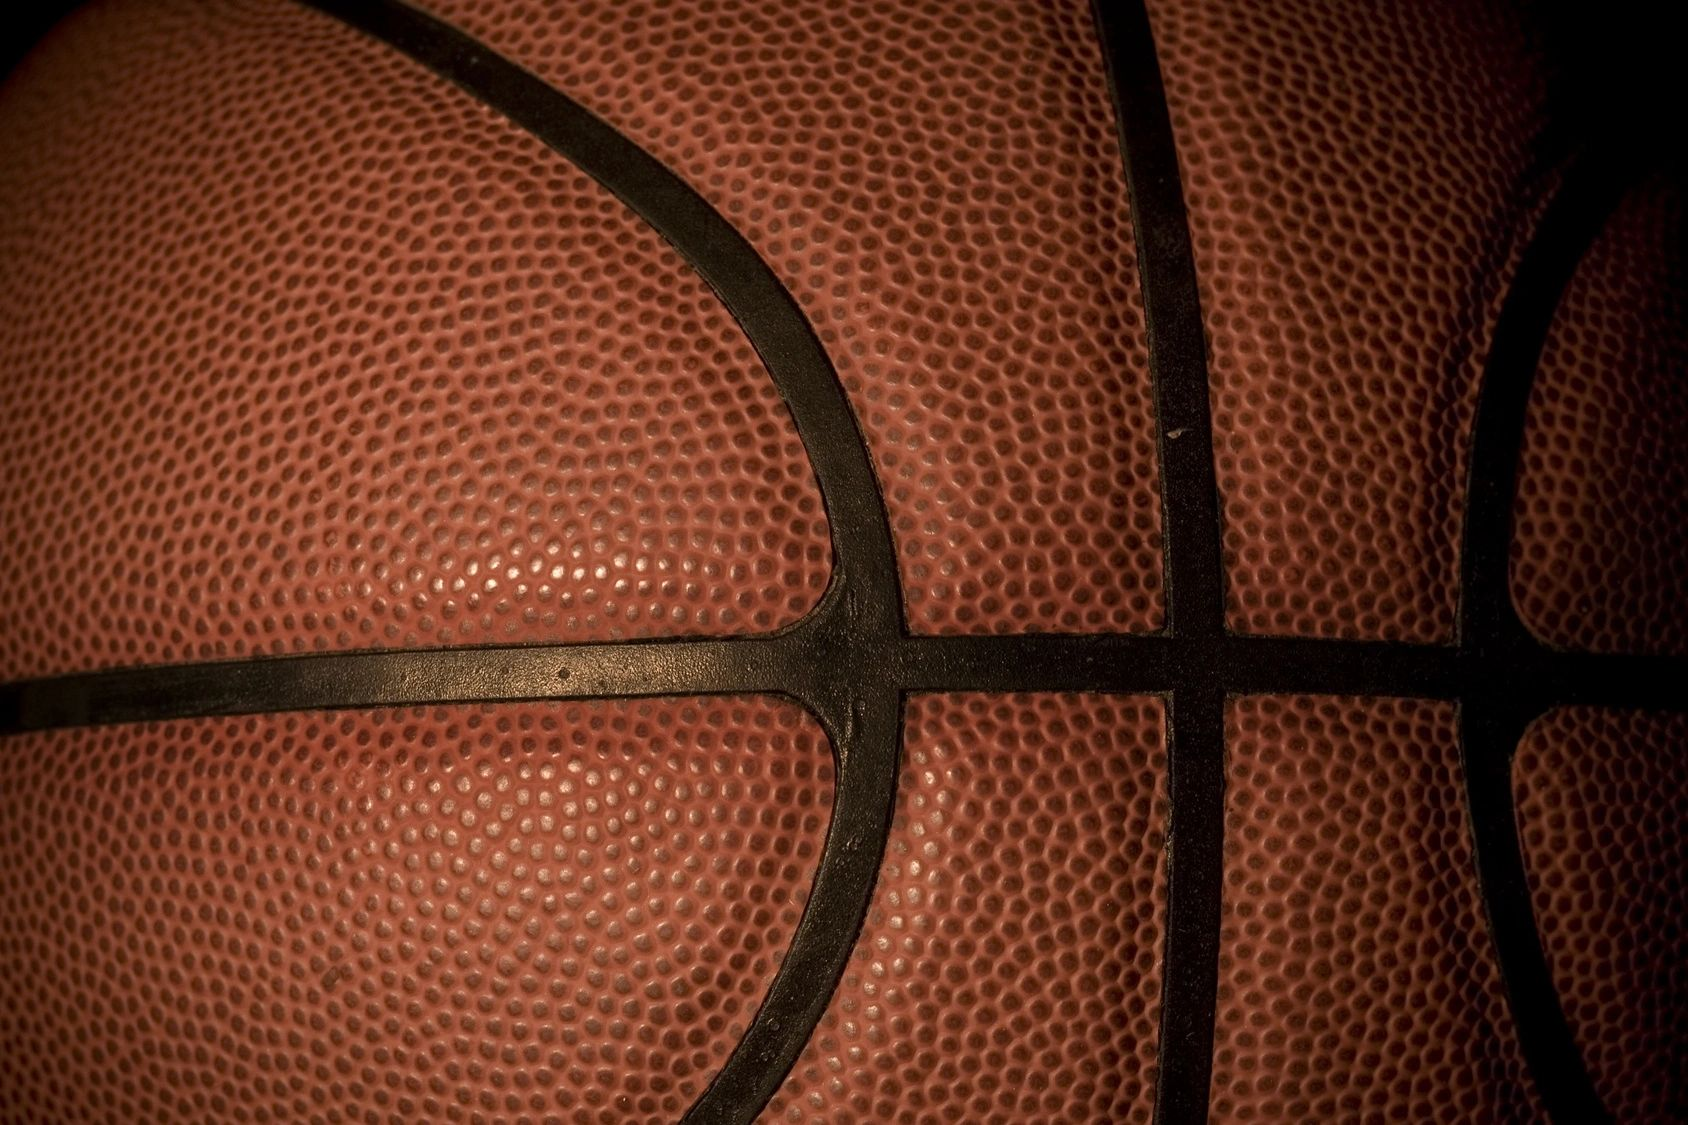 UW Hoops, The Ongoing Discussion Around Youth Sports Being Professionalized & More